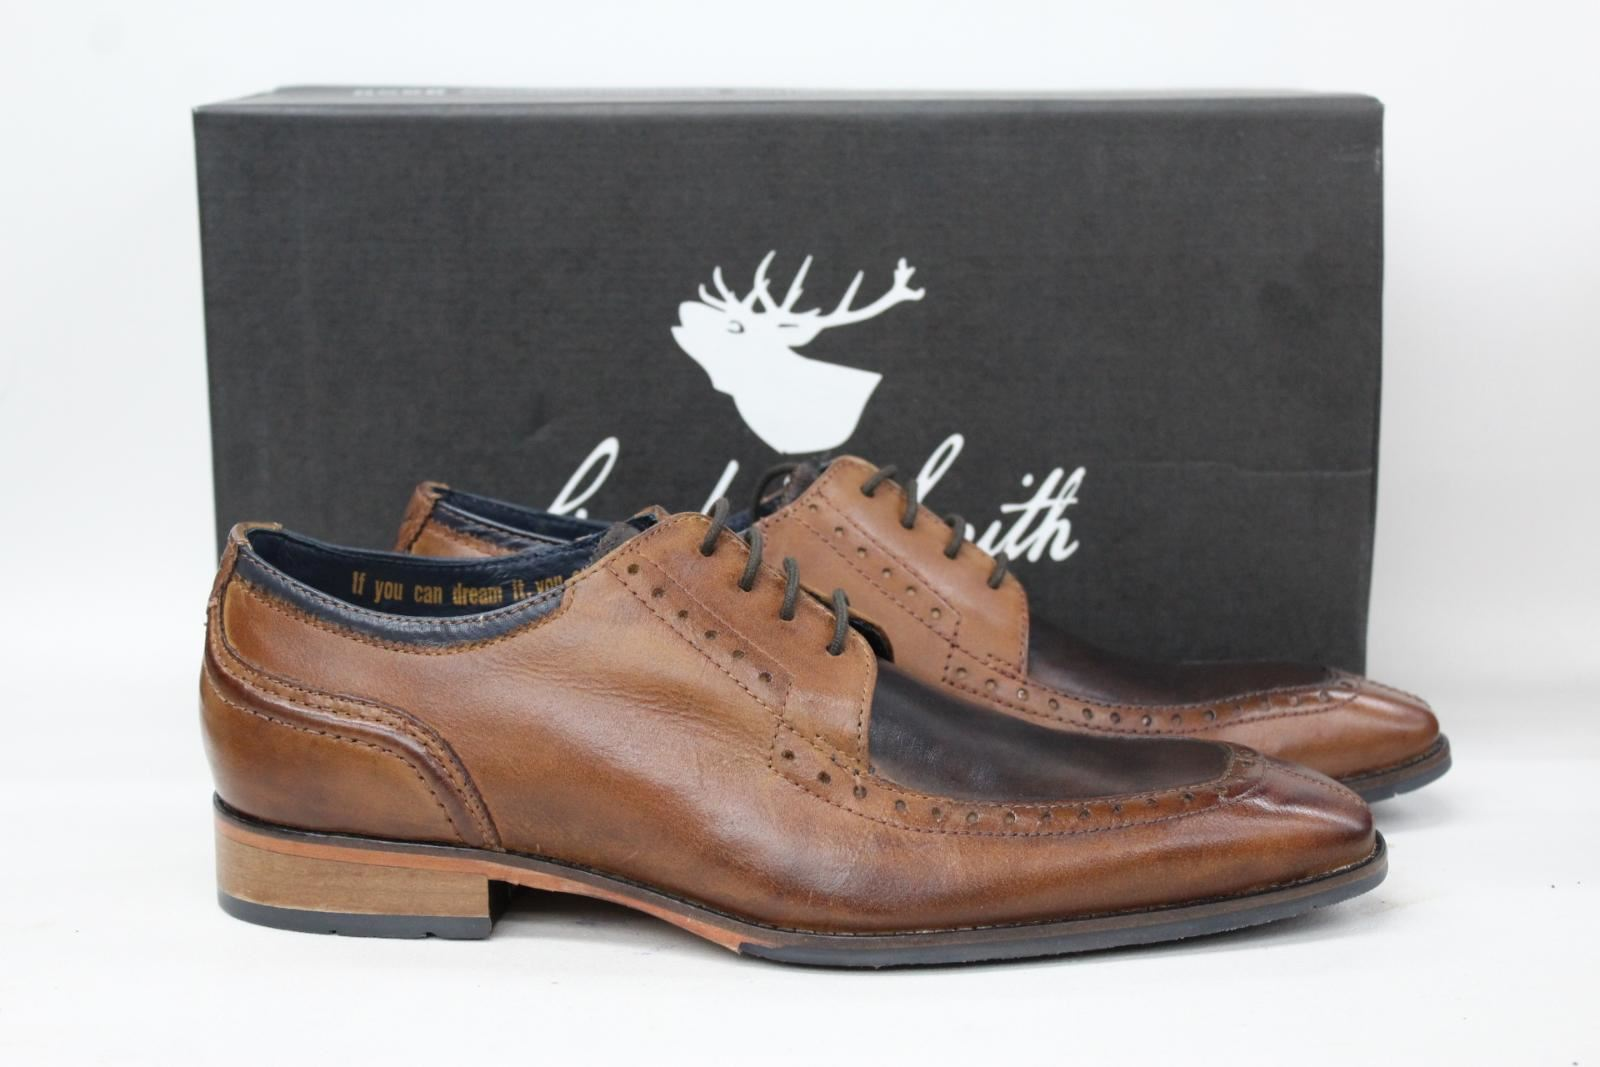 Goodwin-Smith-Homme-Knowle-deux-tons-marron-clair-Tablier-En-Cuir-Derby-Chaussures-UK8-Neuf